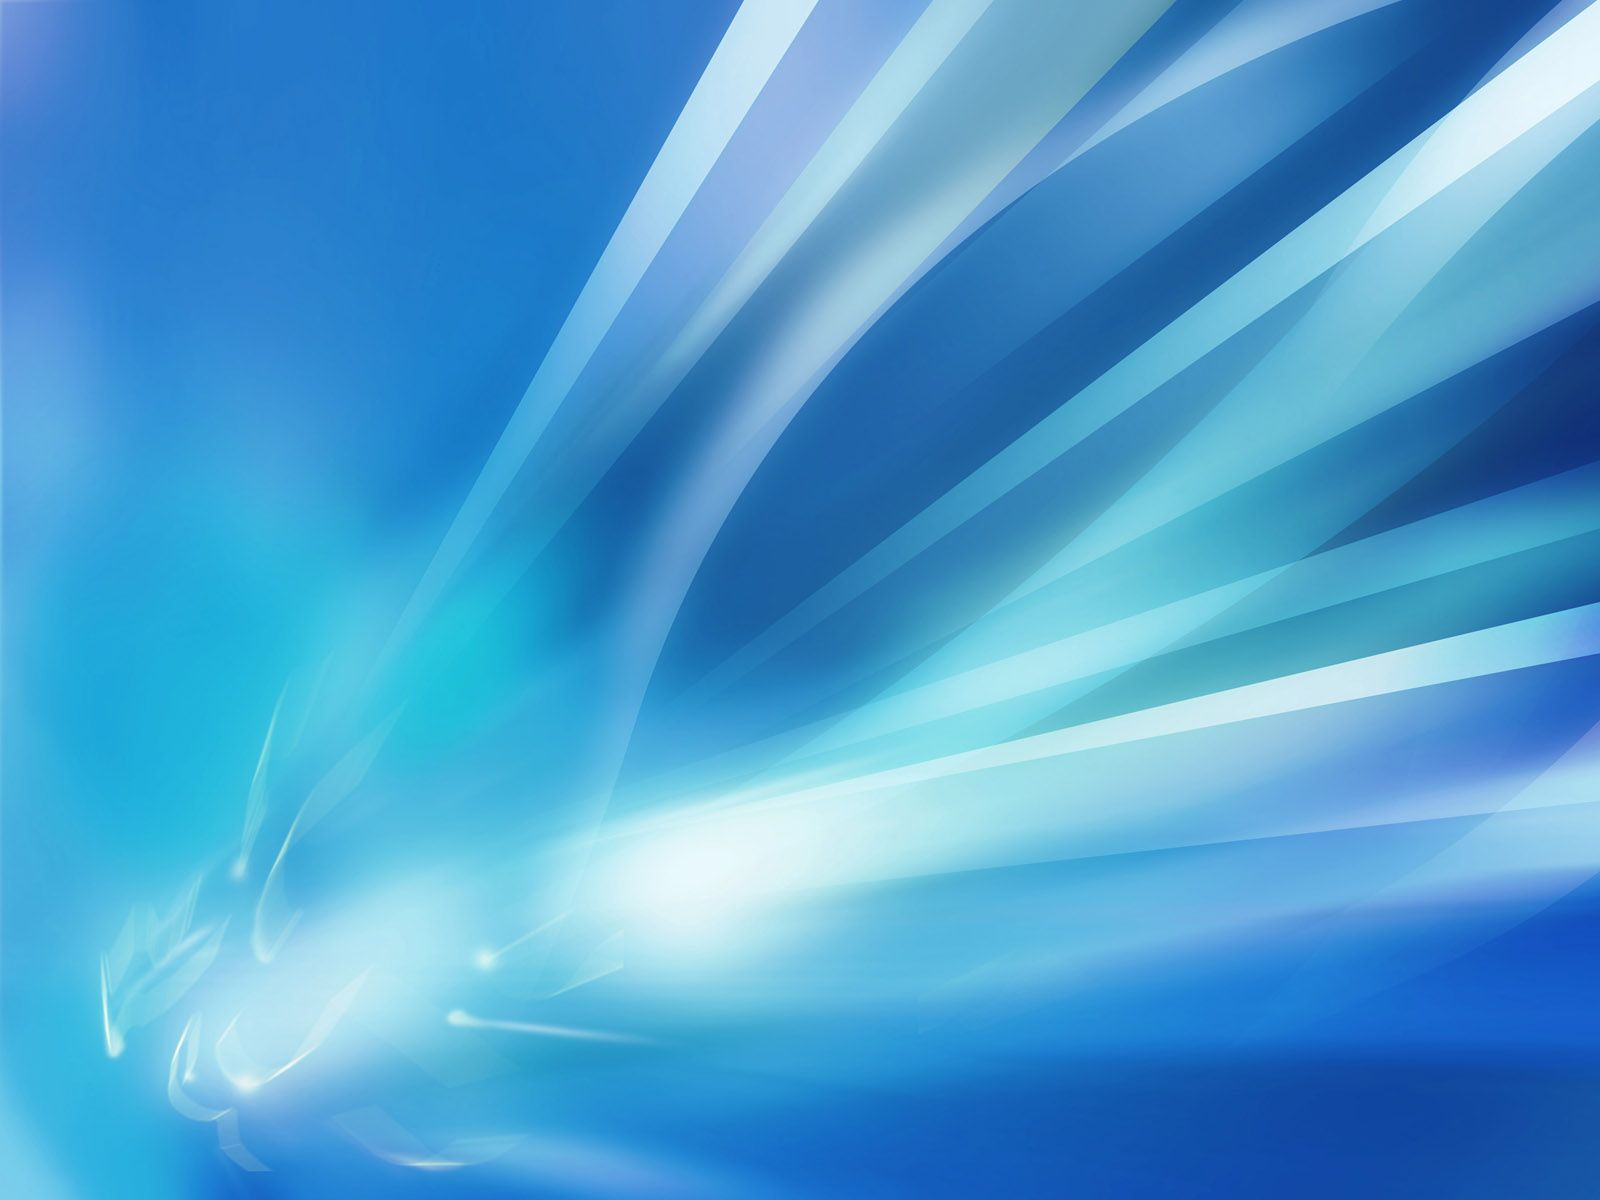 Blue Crystal Lines Abstract Abstract Abstract Template Blue